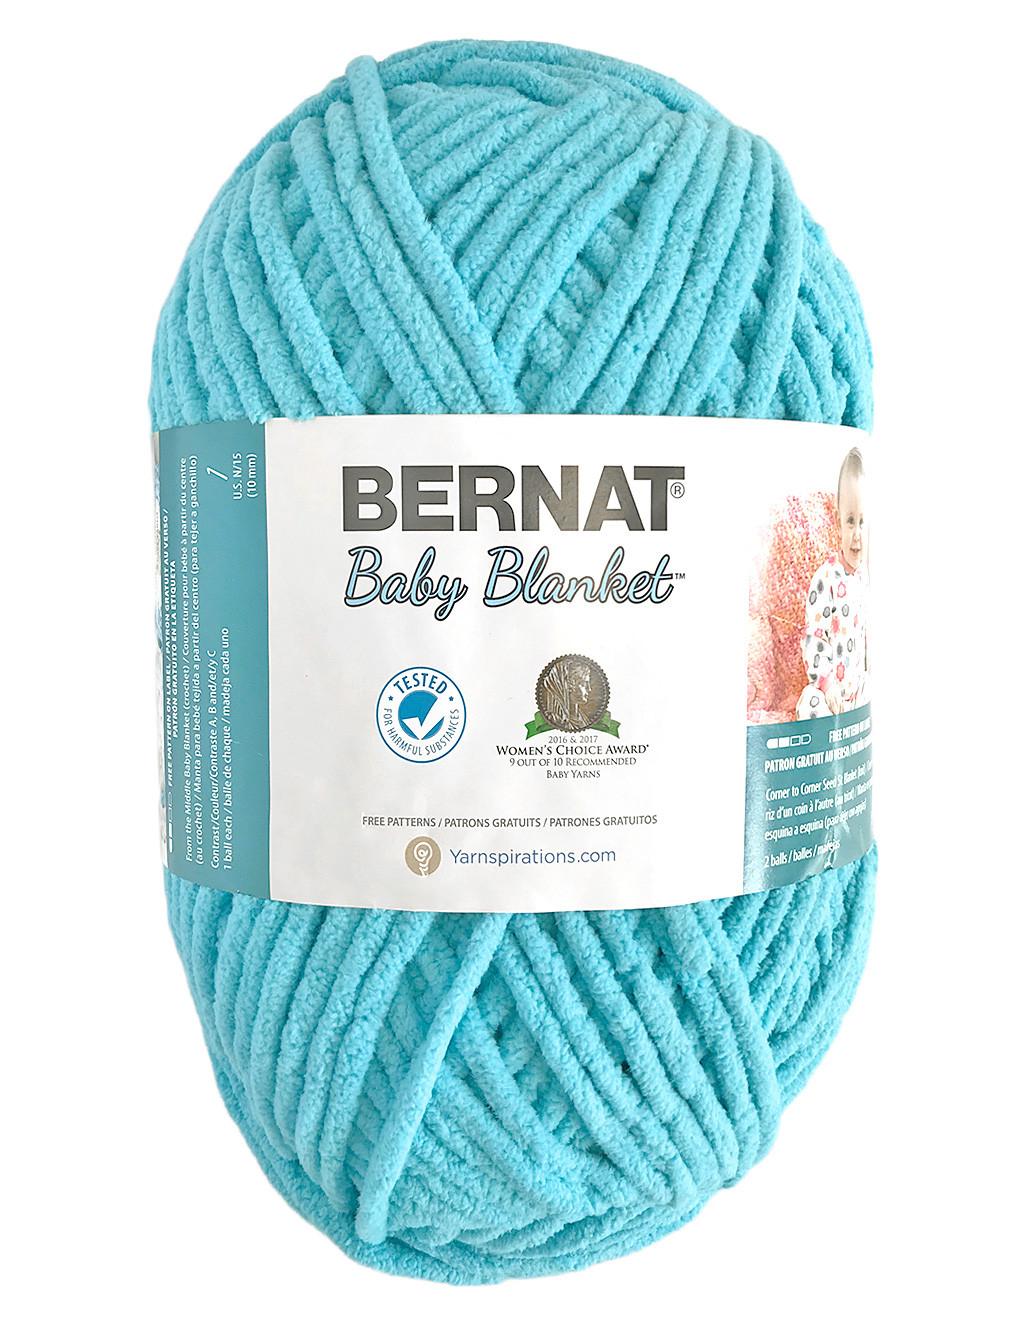 Bernat Baby Blanket Yarn Big Ball Unique Baby Teal Bernat Baby Blanket Big Ball Chenille Yarn 300g Of Awesome 48 Pictures Bernat Baby Blanket Yarn Big Ball